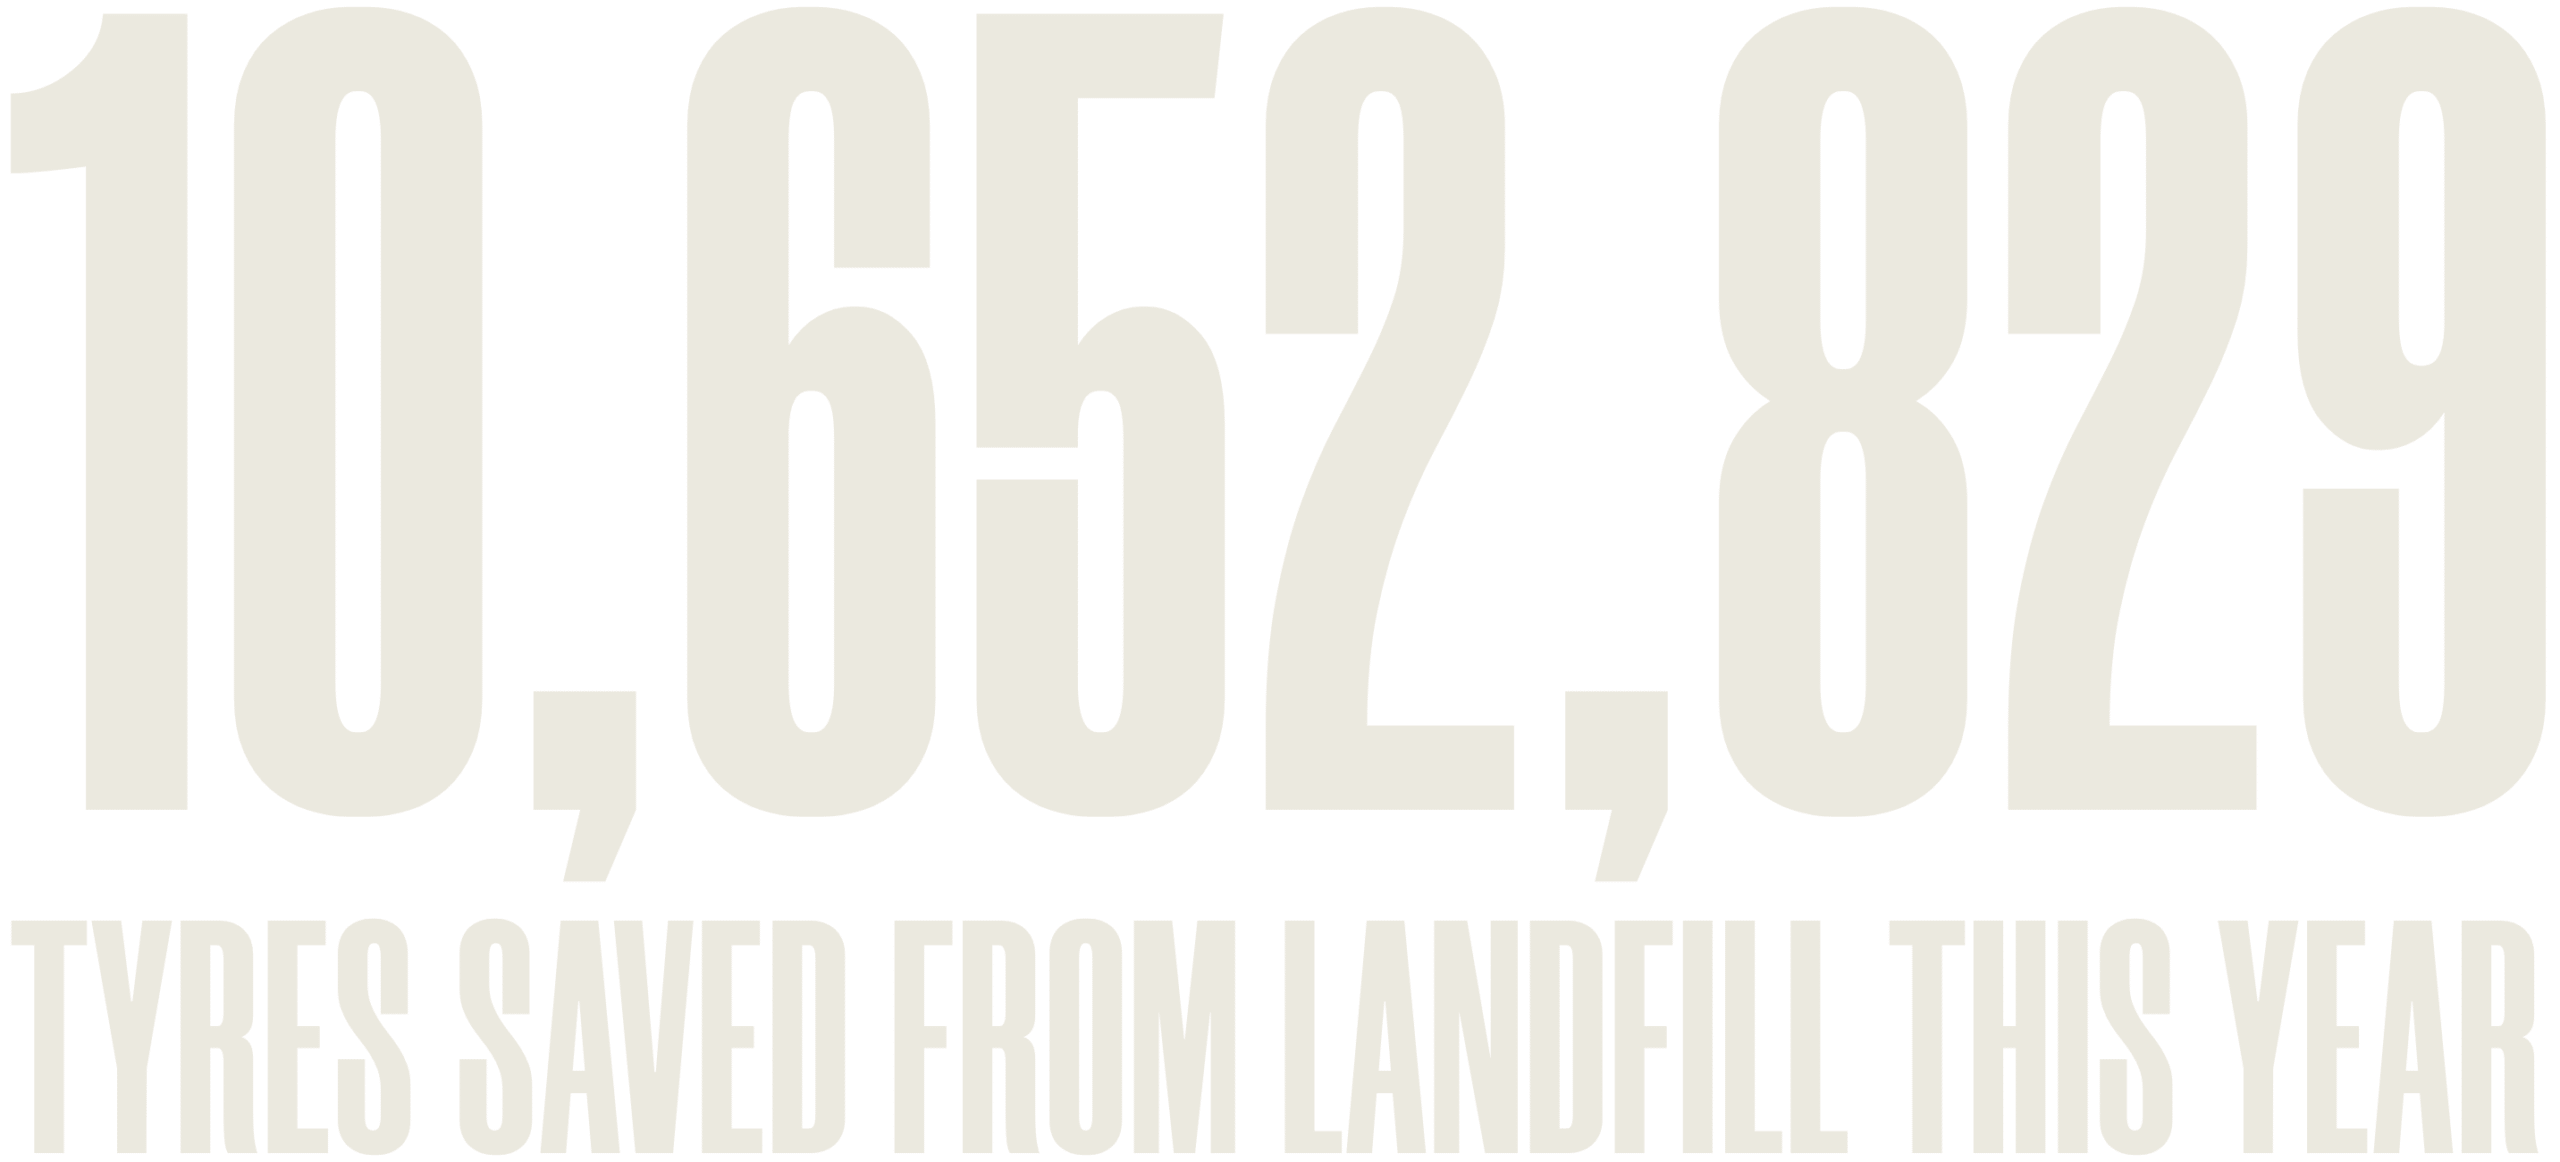 Tyres saved from landfill